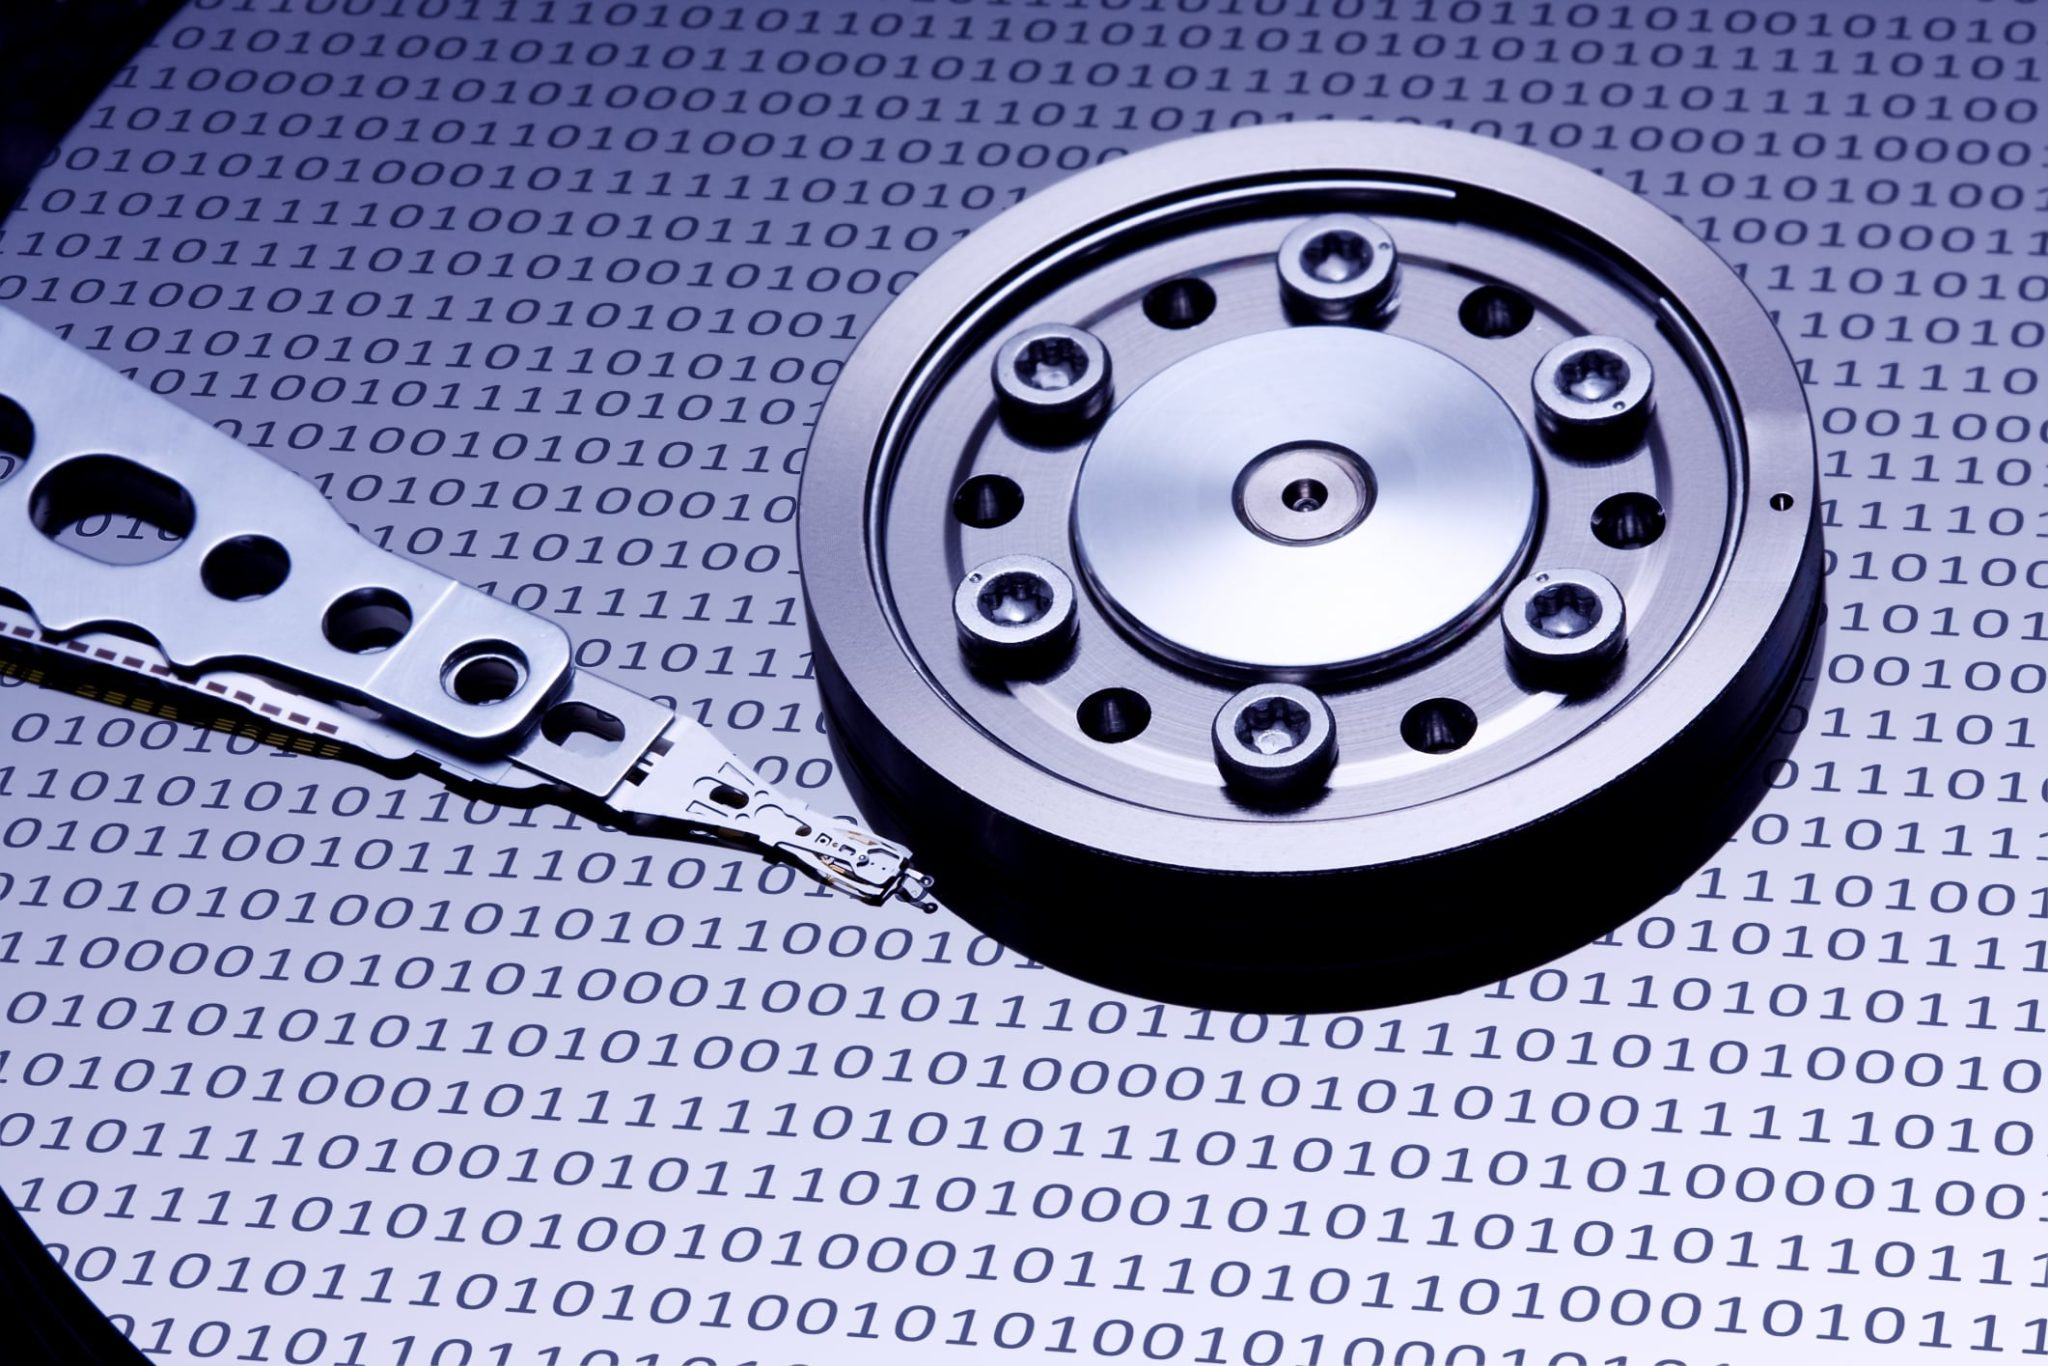 System Failure And Data Recovery